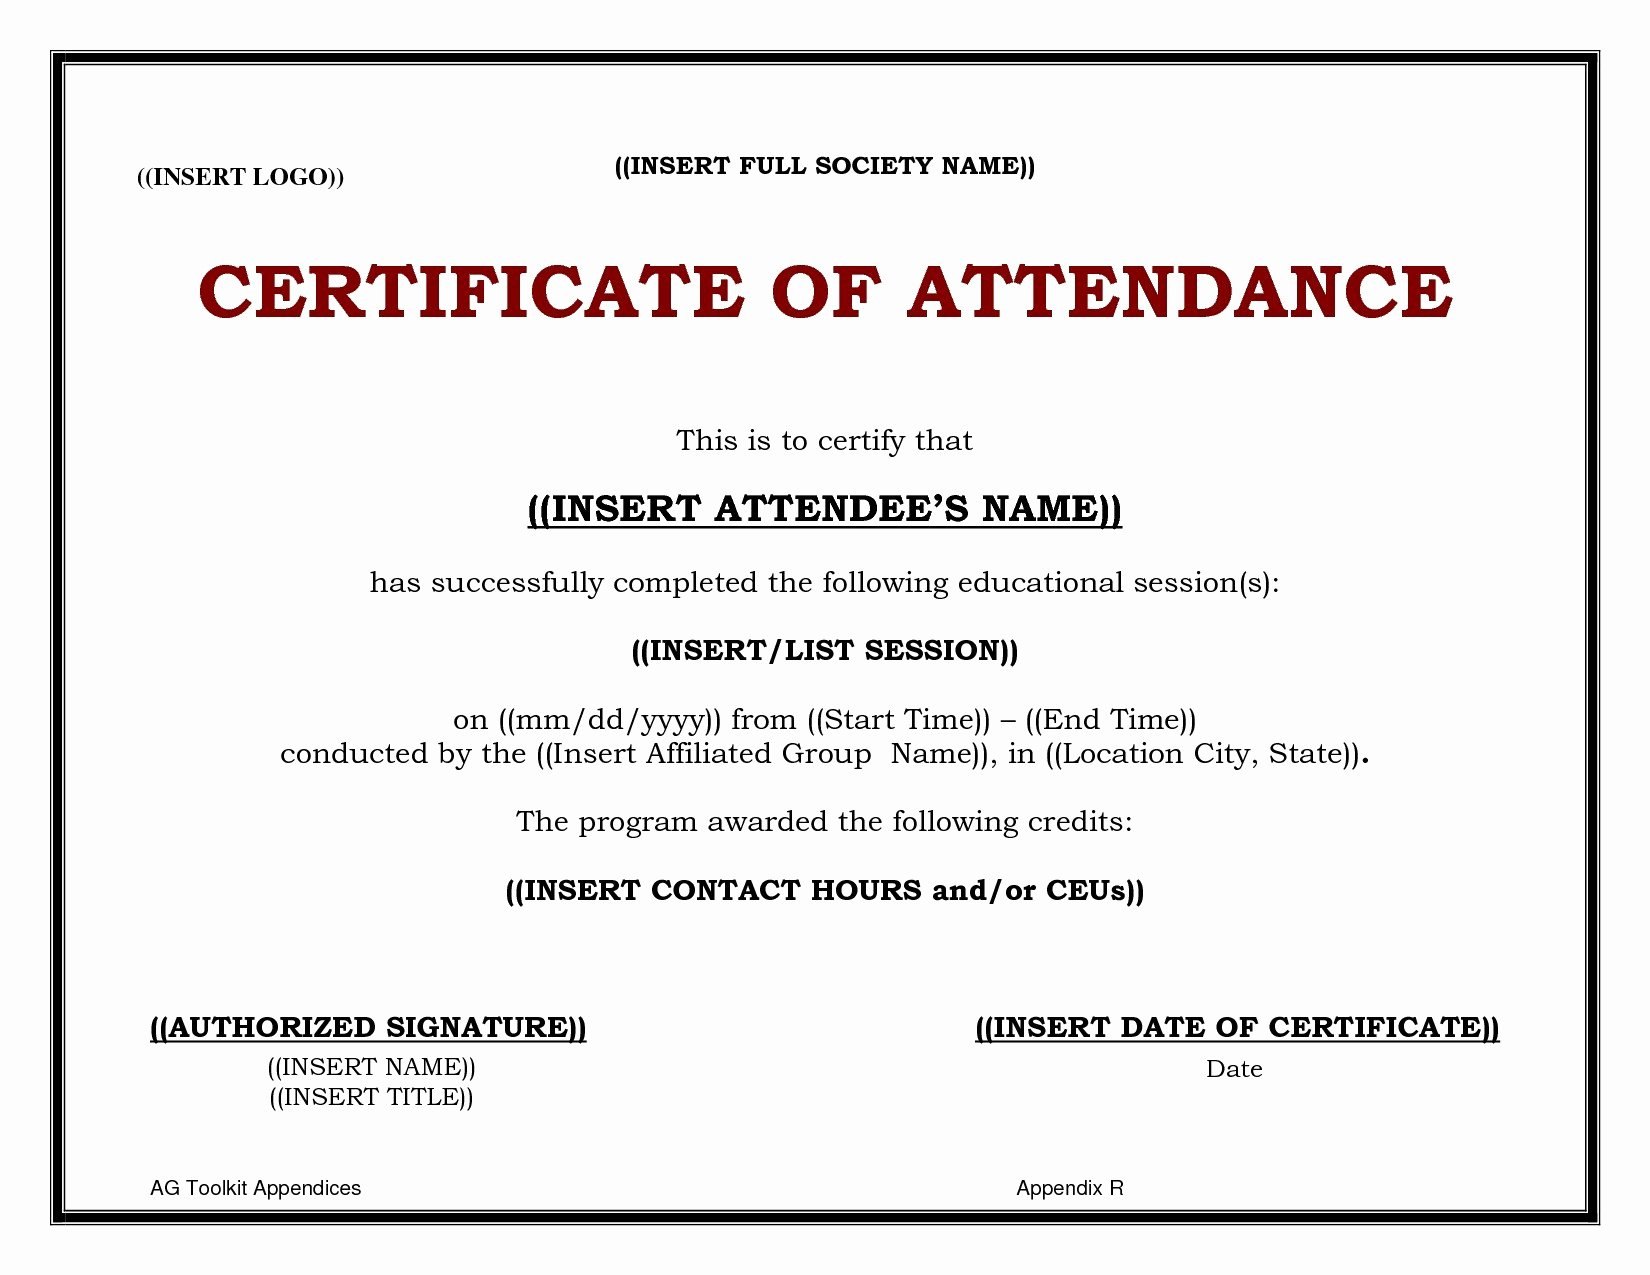 30 Ceu Certificate Of Attendance Template | Pryncepality Throughout Ceu Certificate Template